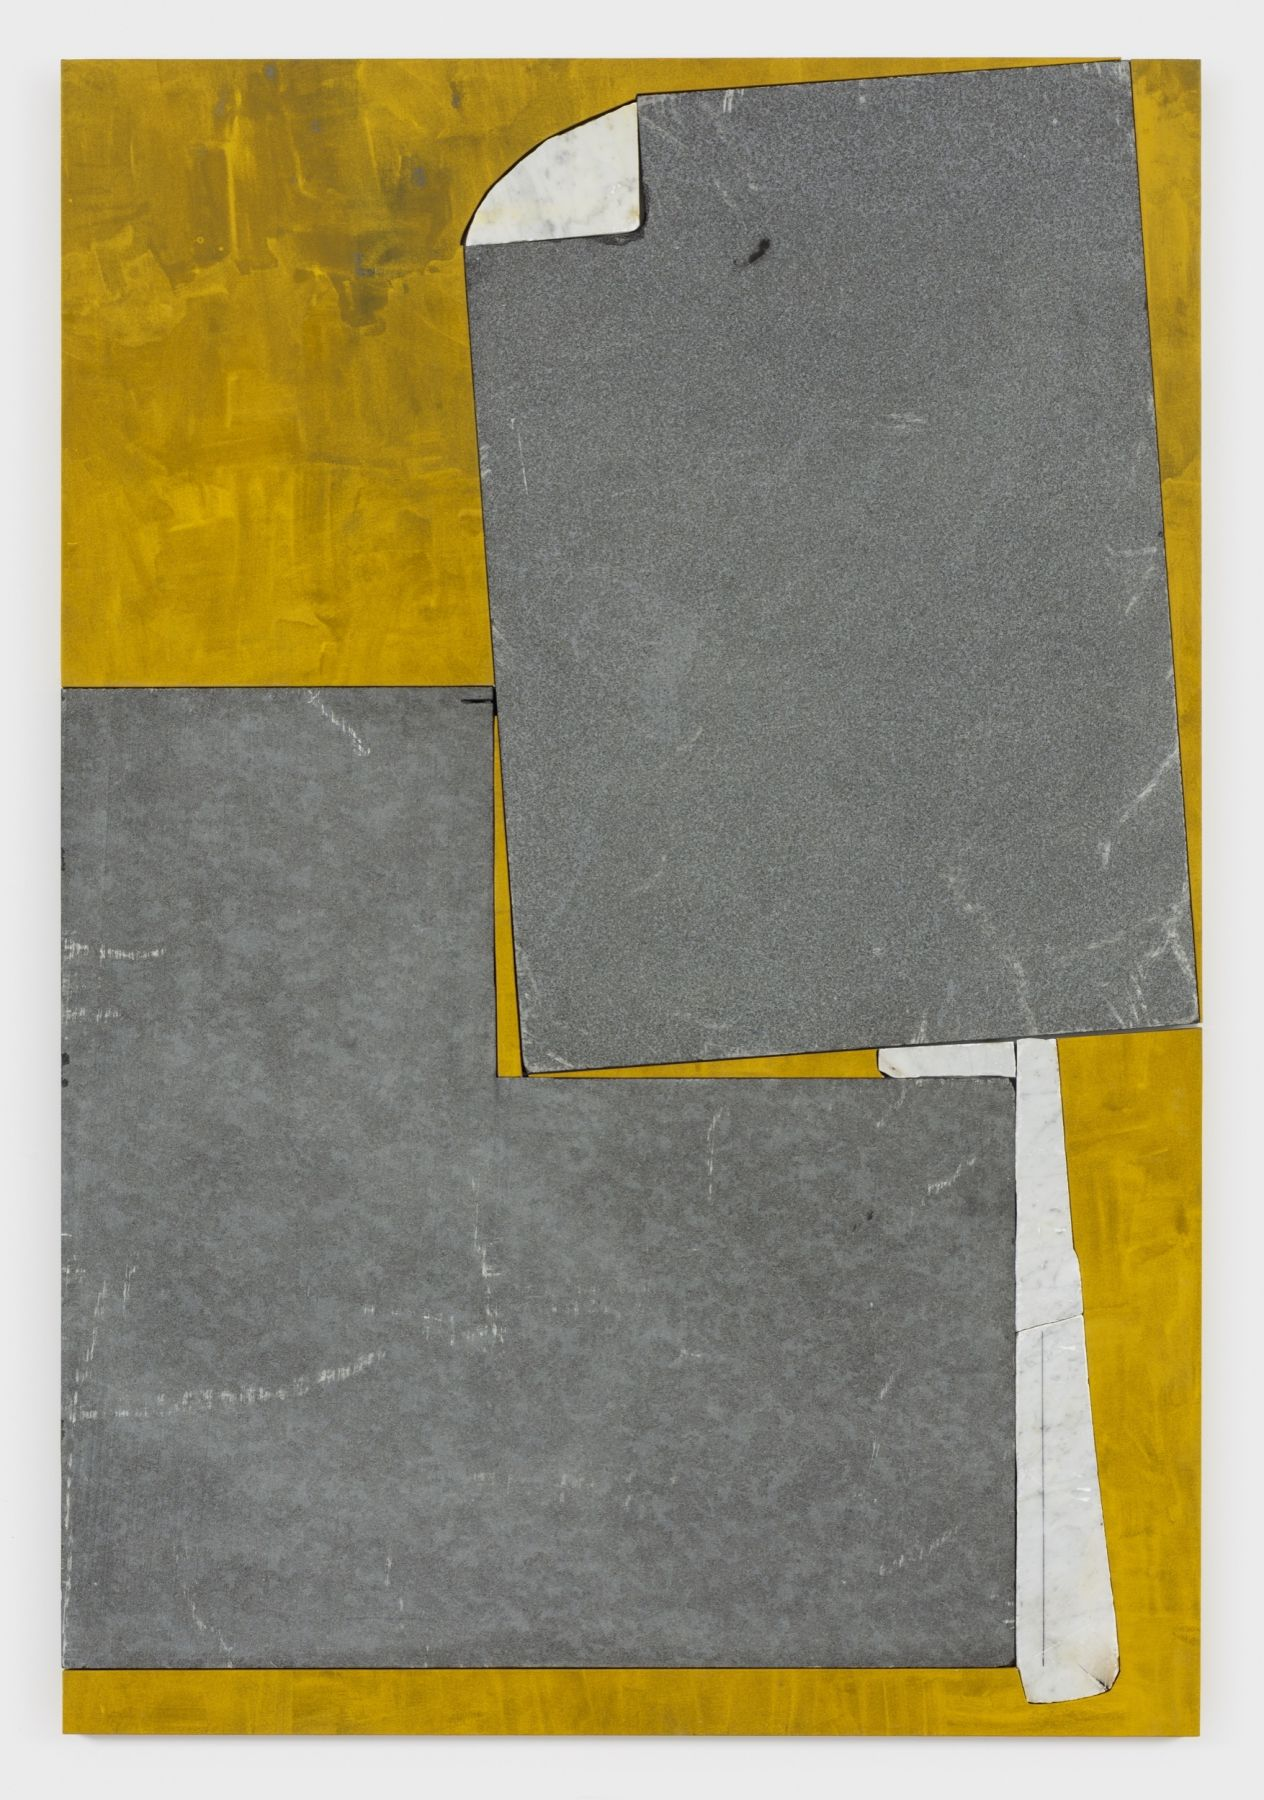 SAM MOYER A Good Wedge, 2019